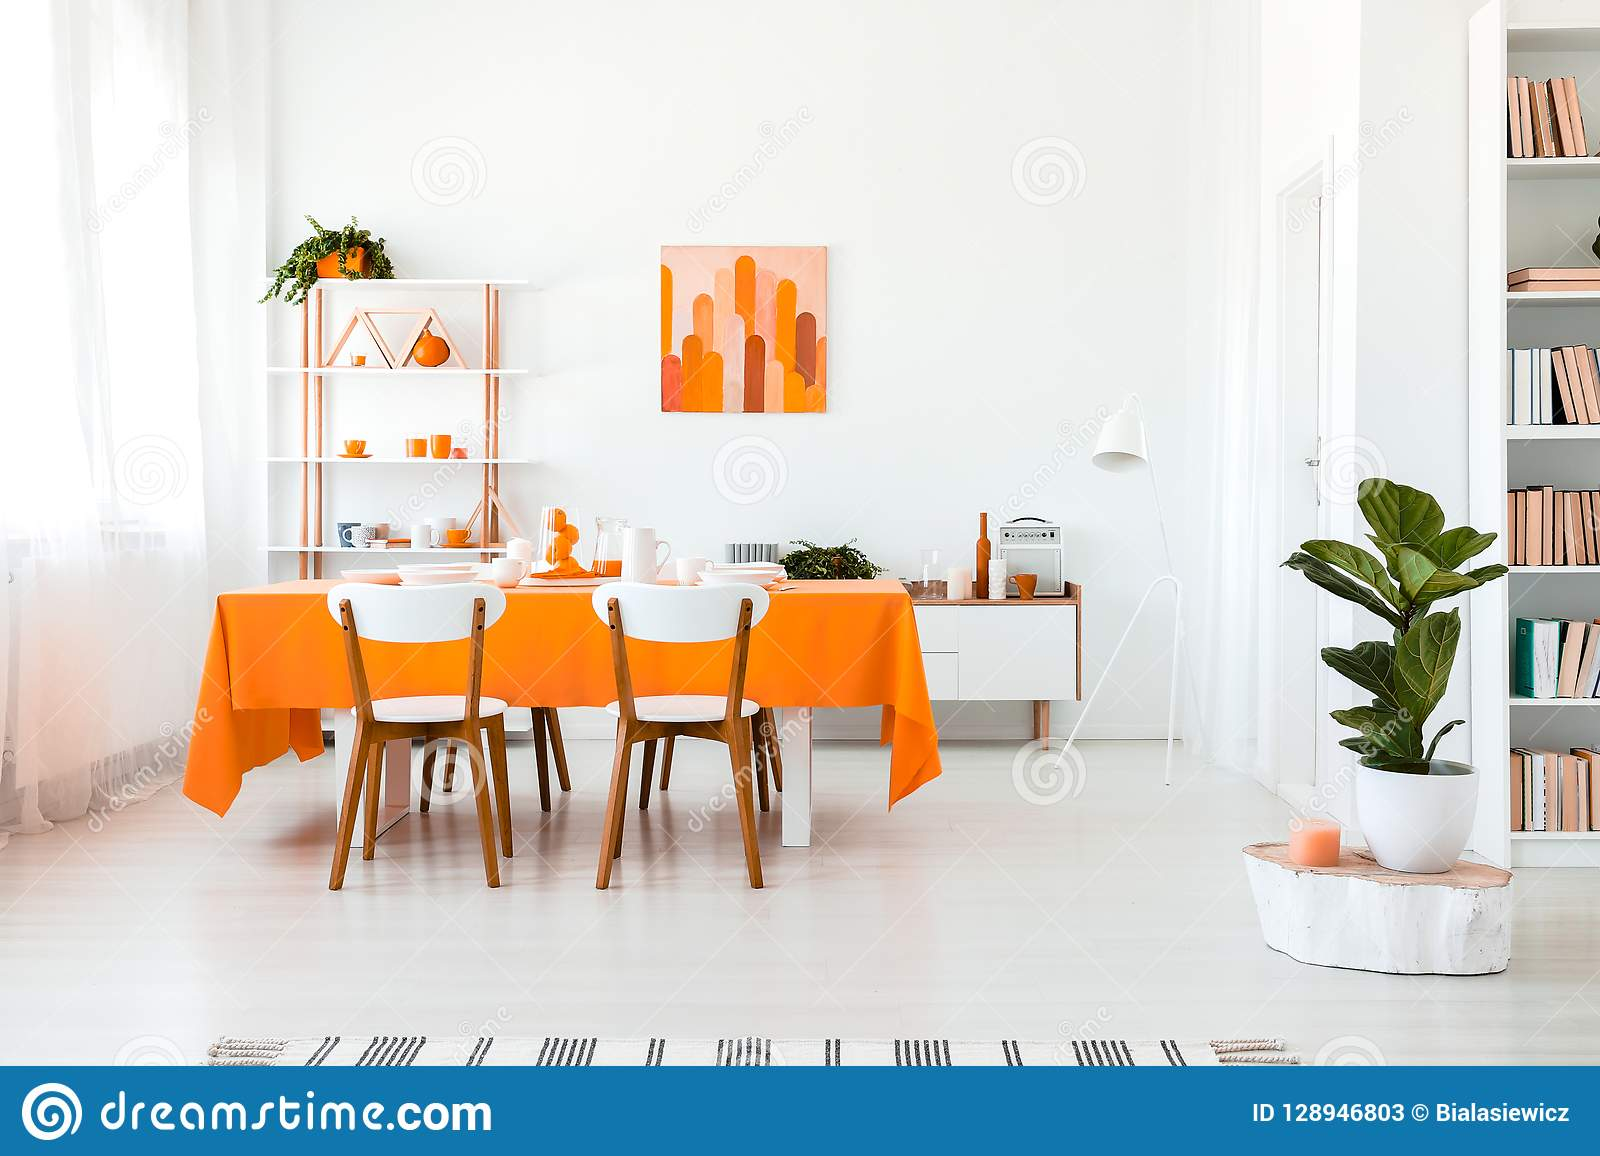 Stylish But Simple Dining Room In Vivid Color Orange And White Interior Design Concept Stock Image Image Of Cabinet Chairs 128946803